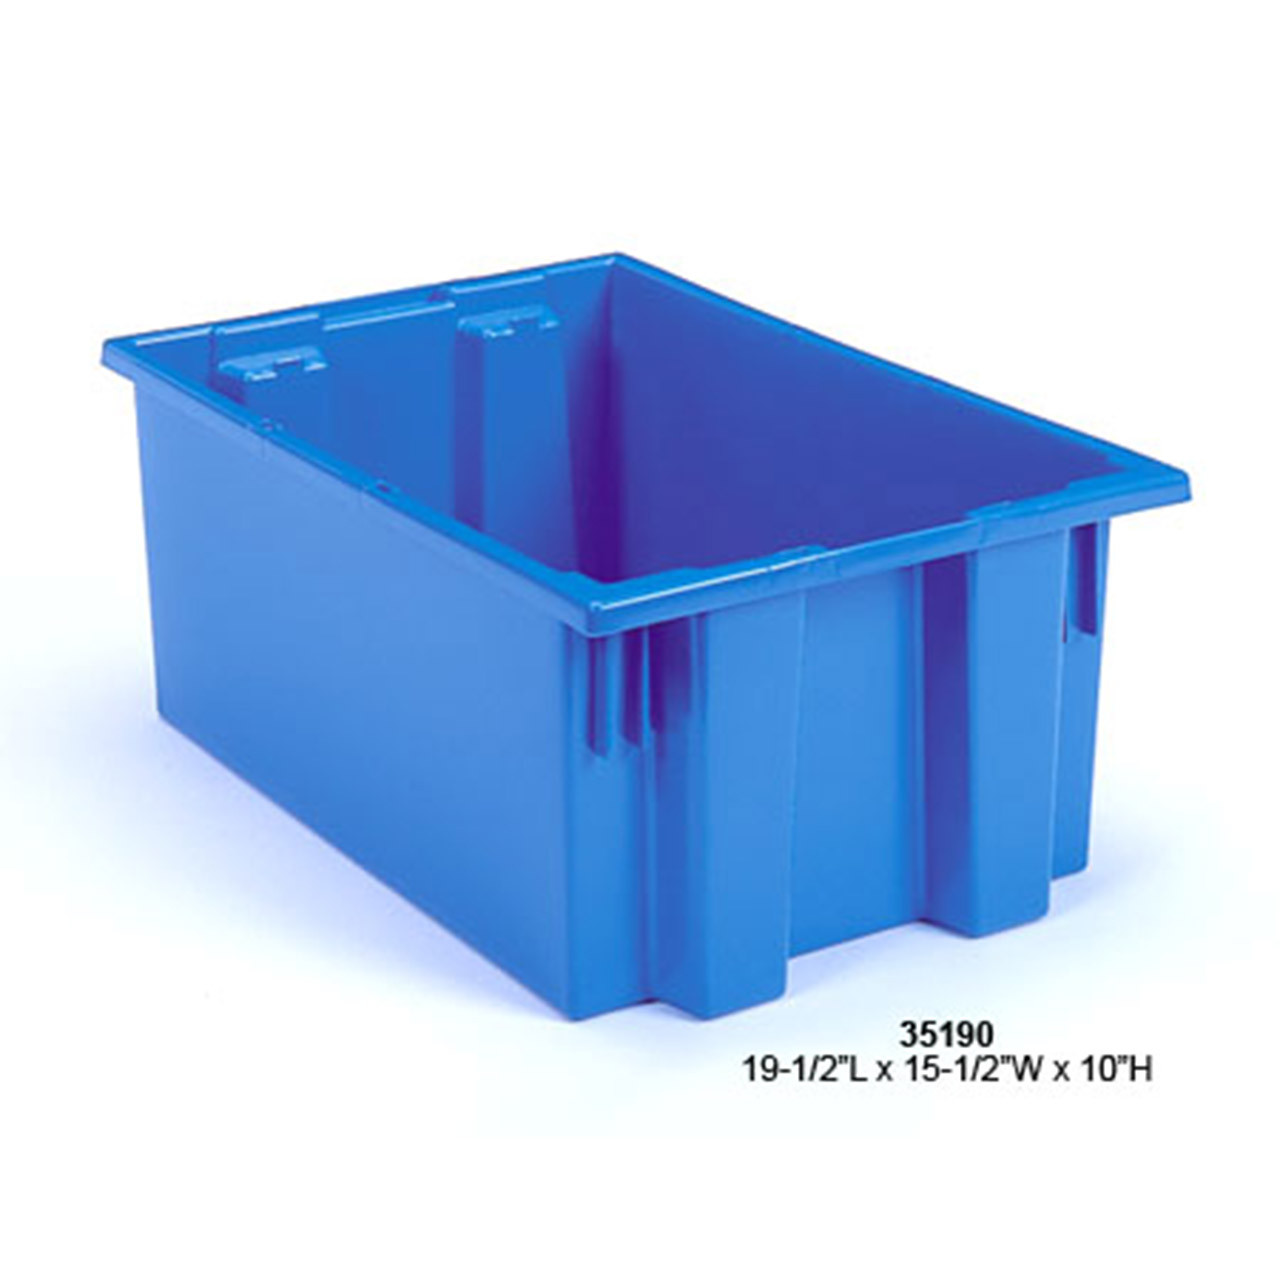 Akro-Mils Nest and Stack Plastic Tote Blue